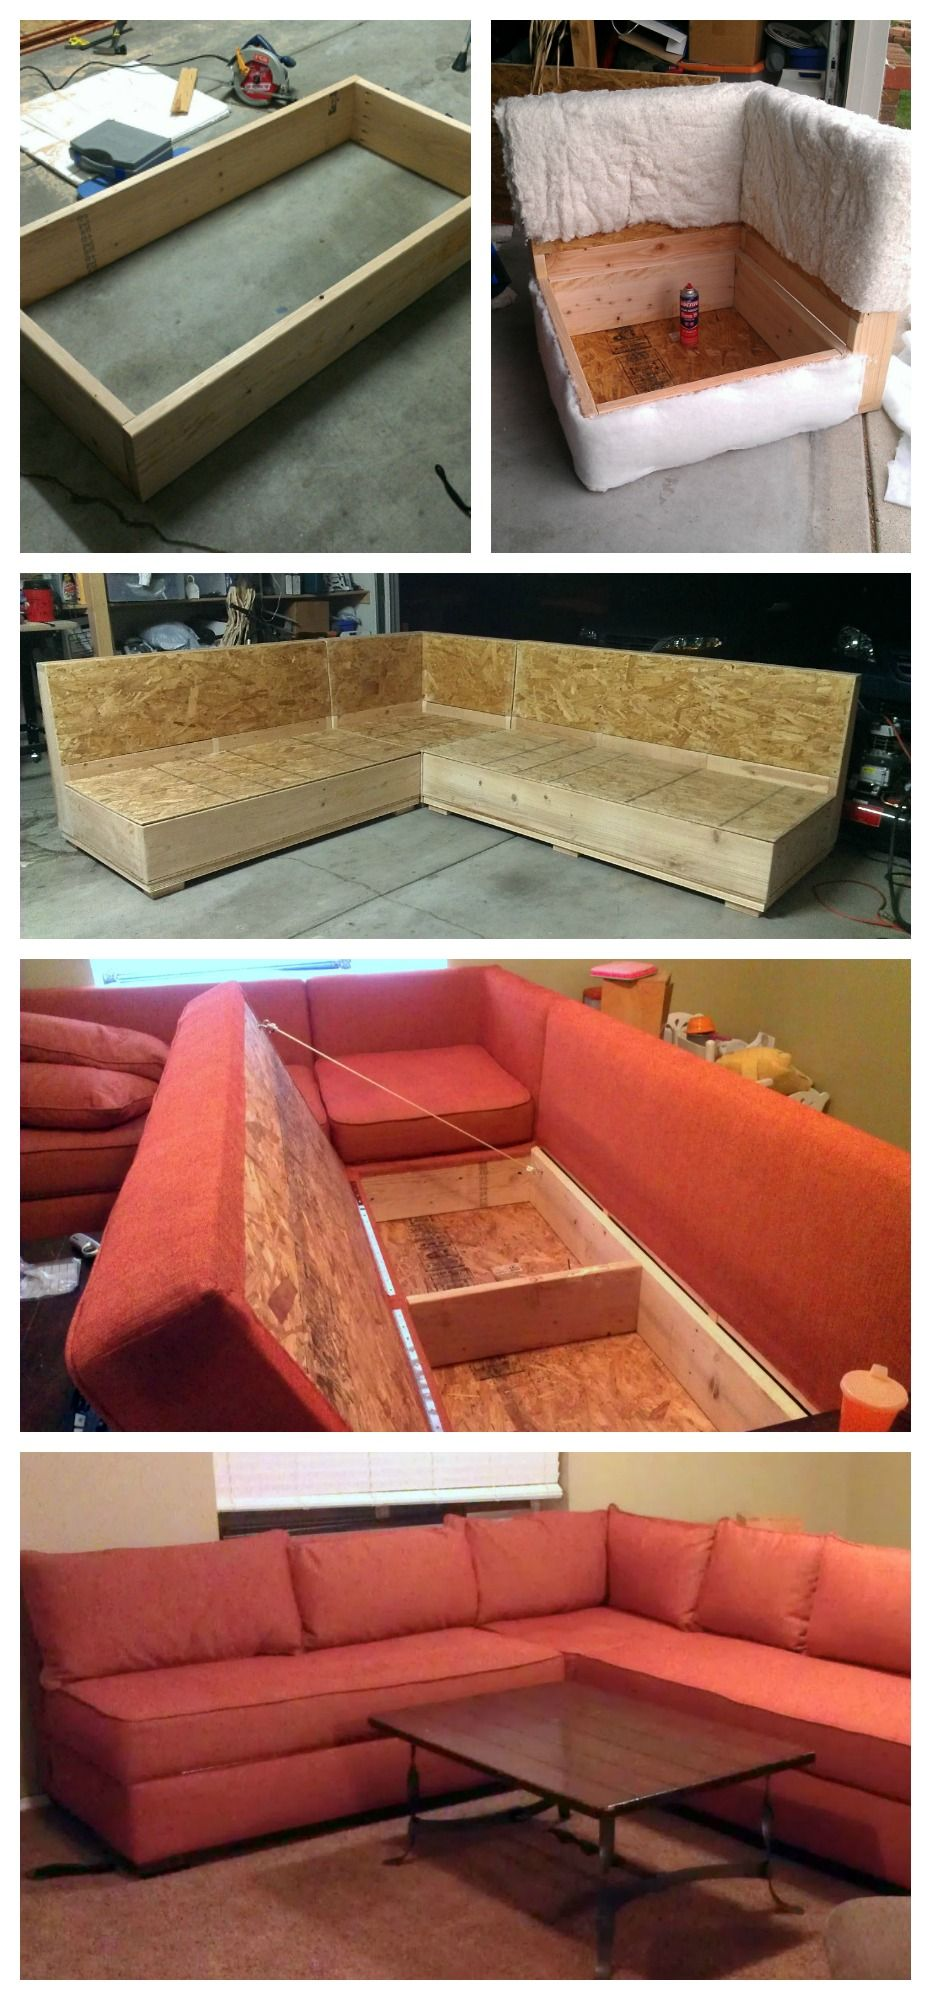 Diy Sofa Sectional With Storage Uses Store Bought Cushions - Couches with storage